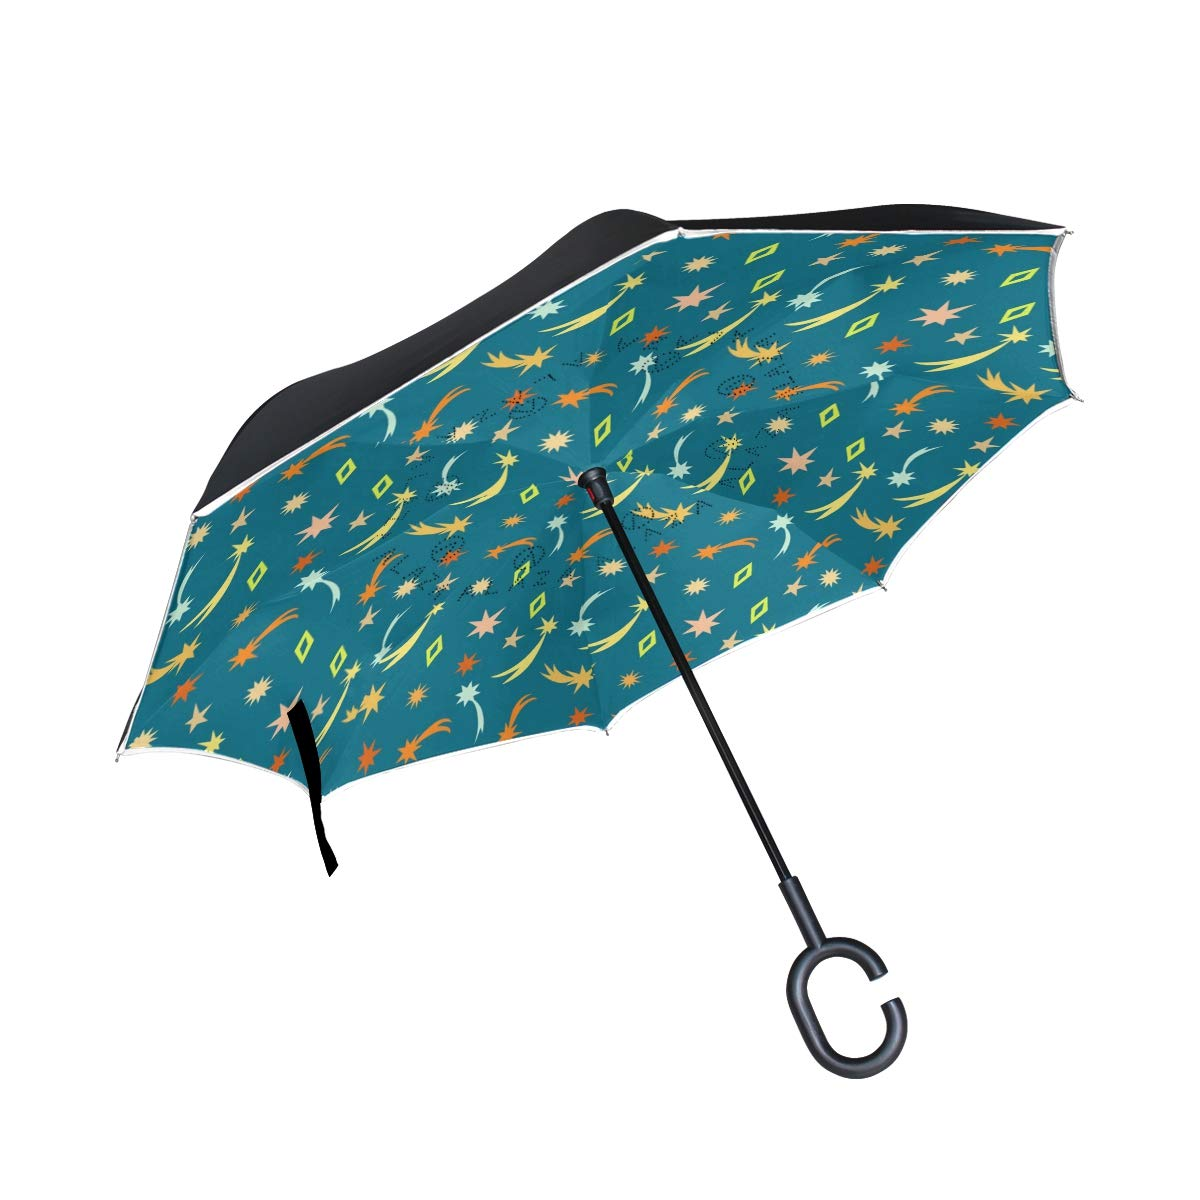 senya Double Layer Inverted Umbrellas Cute Meteor Stars Pattern Folding Umbrella Windproof UV Protection for Car Use Rain Outdoor With C-Shaped Handle by senya (Image #1)